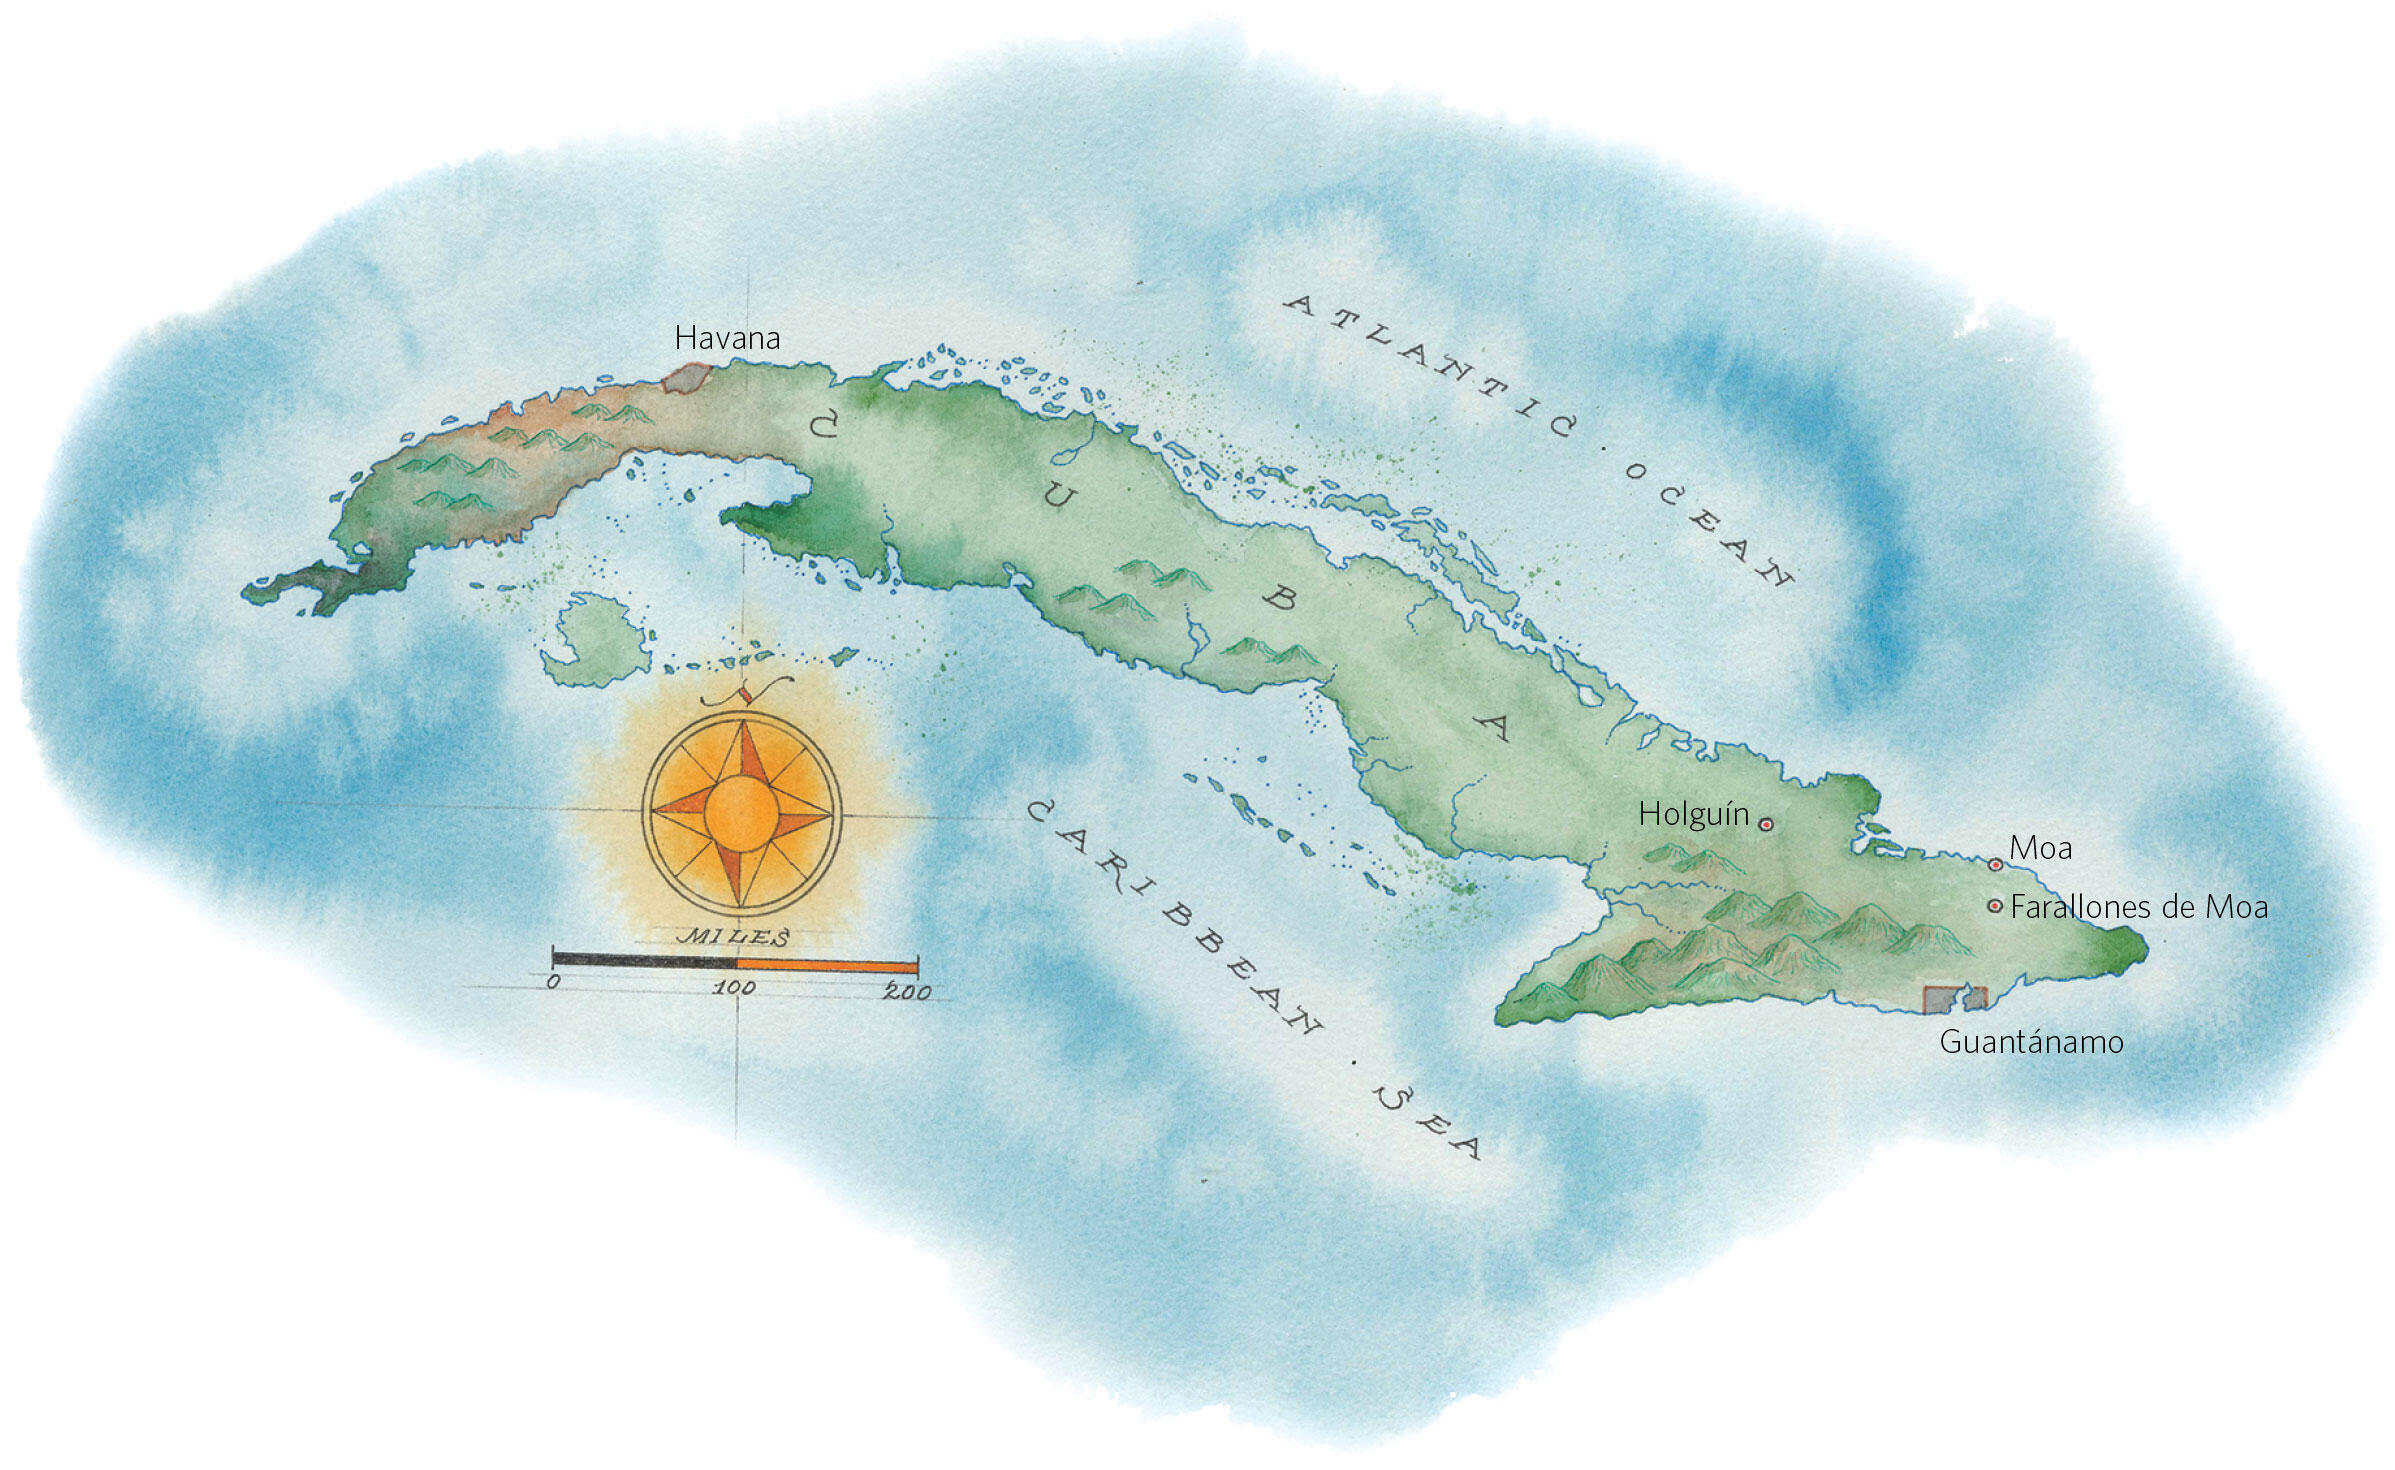 Cuba is the only place besides the southeastern U.S. that Ivory-billed Woodpeckers lived. Some hold out hope that a remnant population hangs on in the island's eastern mountains. Map: Mike Reagan